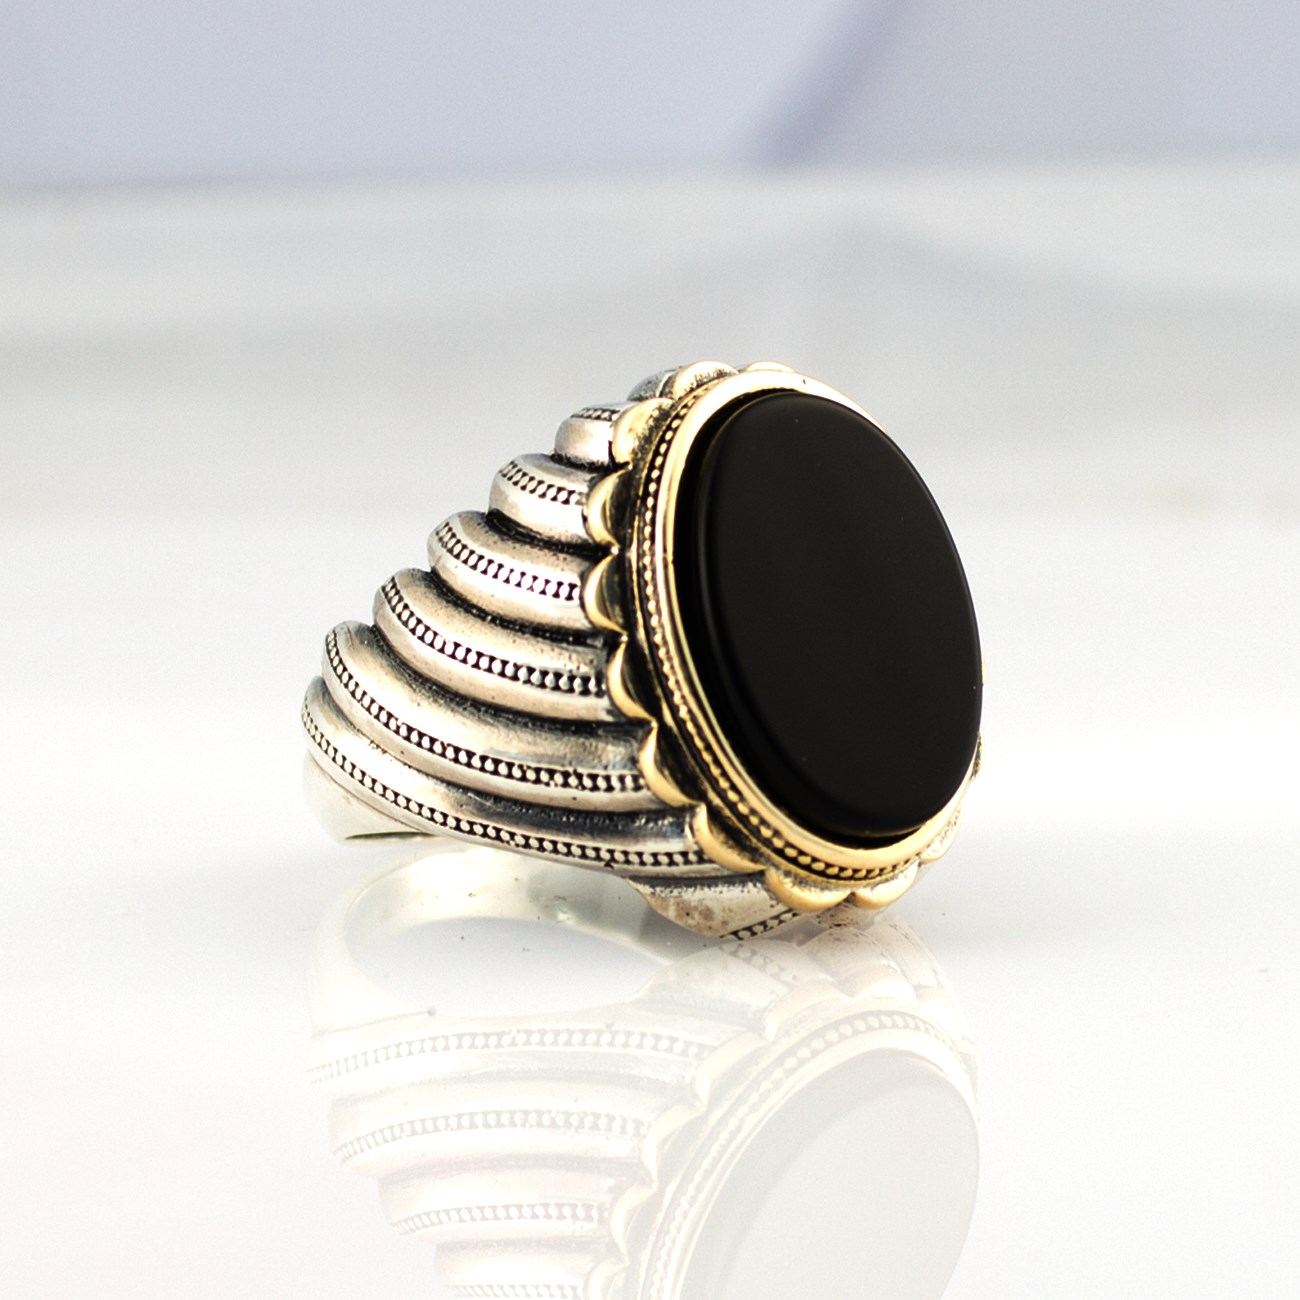 925 Sterling Silver Ring For Men With Black Onyx Stone (Made In Turkey)